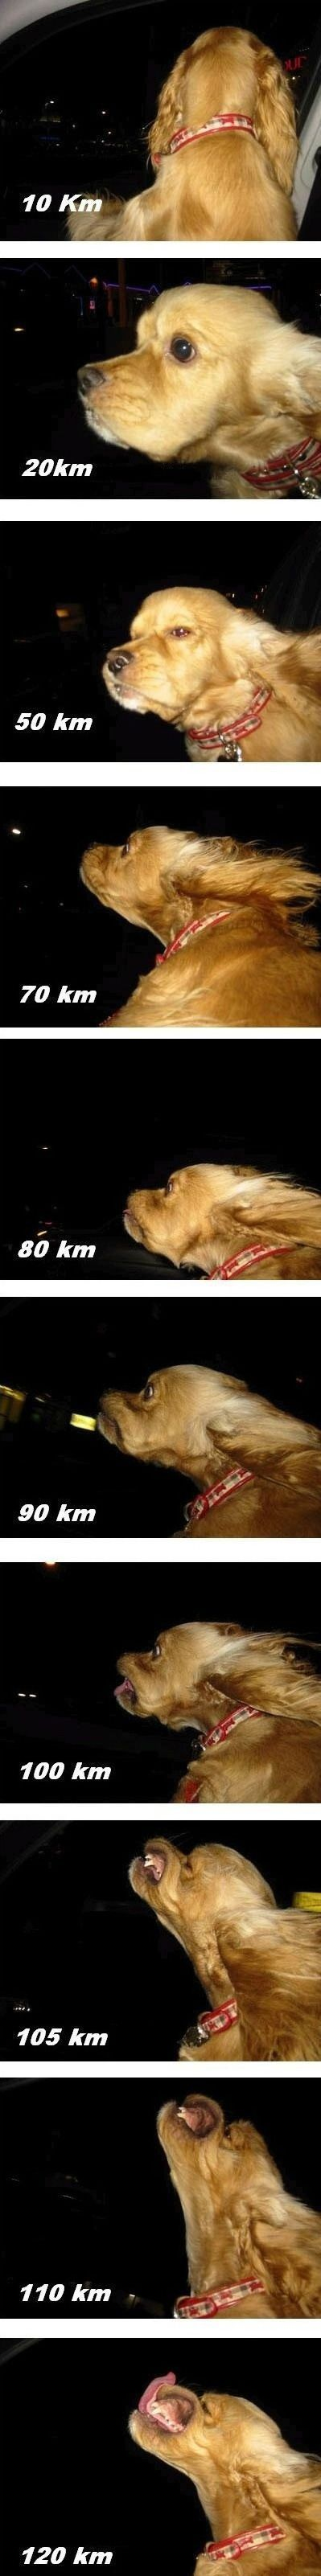 The dog speedometer. Try to look at this and not laugh